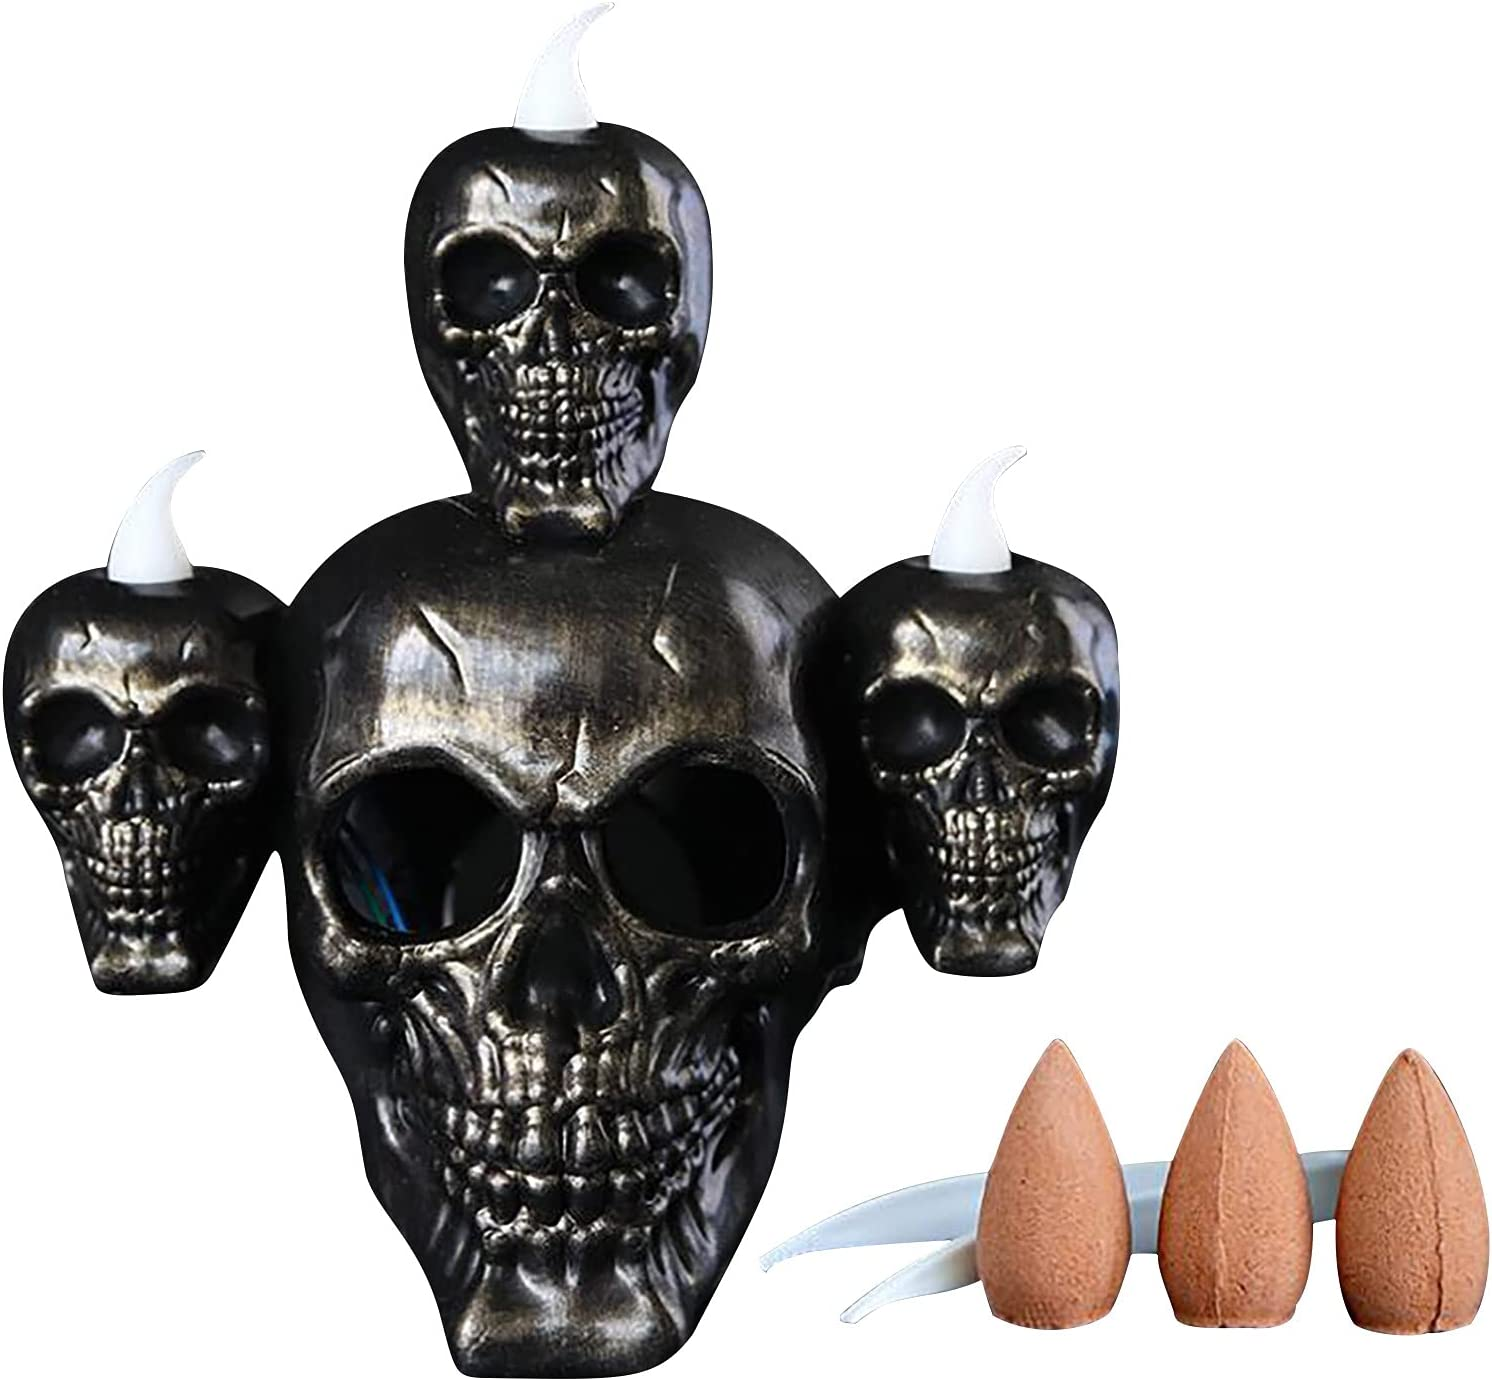 Halloween Creative Light Limited time sale Max 70% OFF Decoration Horror Lamp Skull